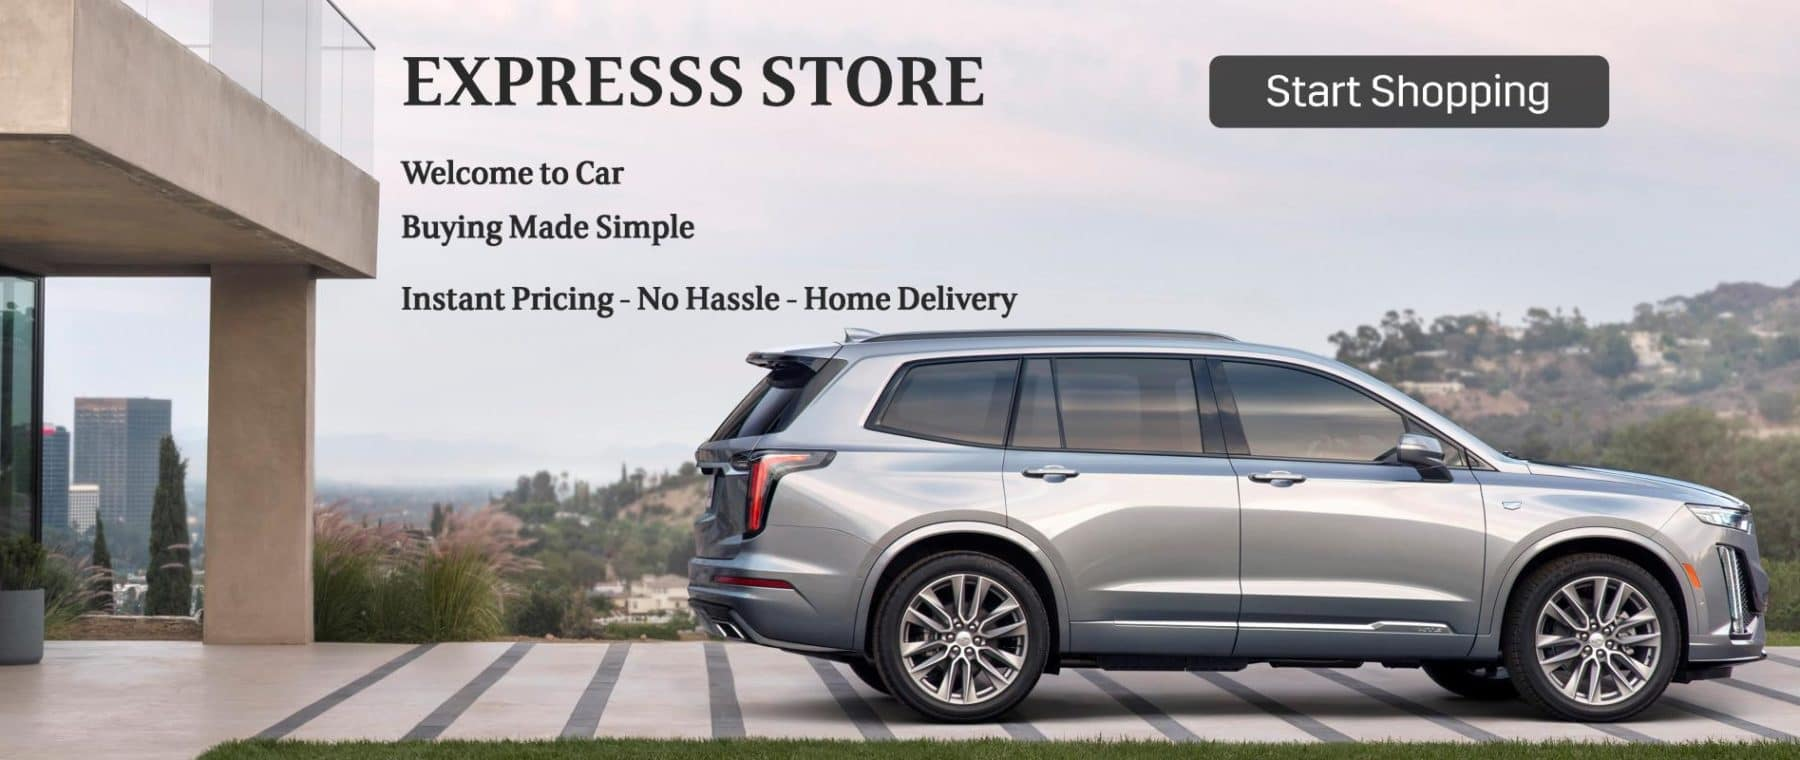 Shaheen Express Store Car Buying Made Simple